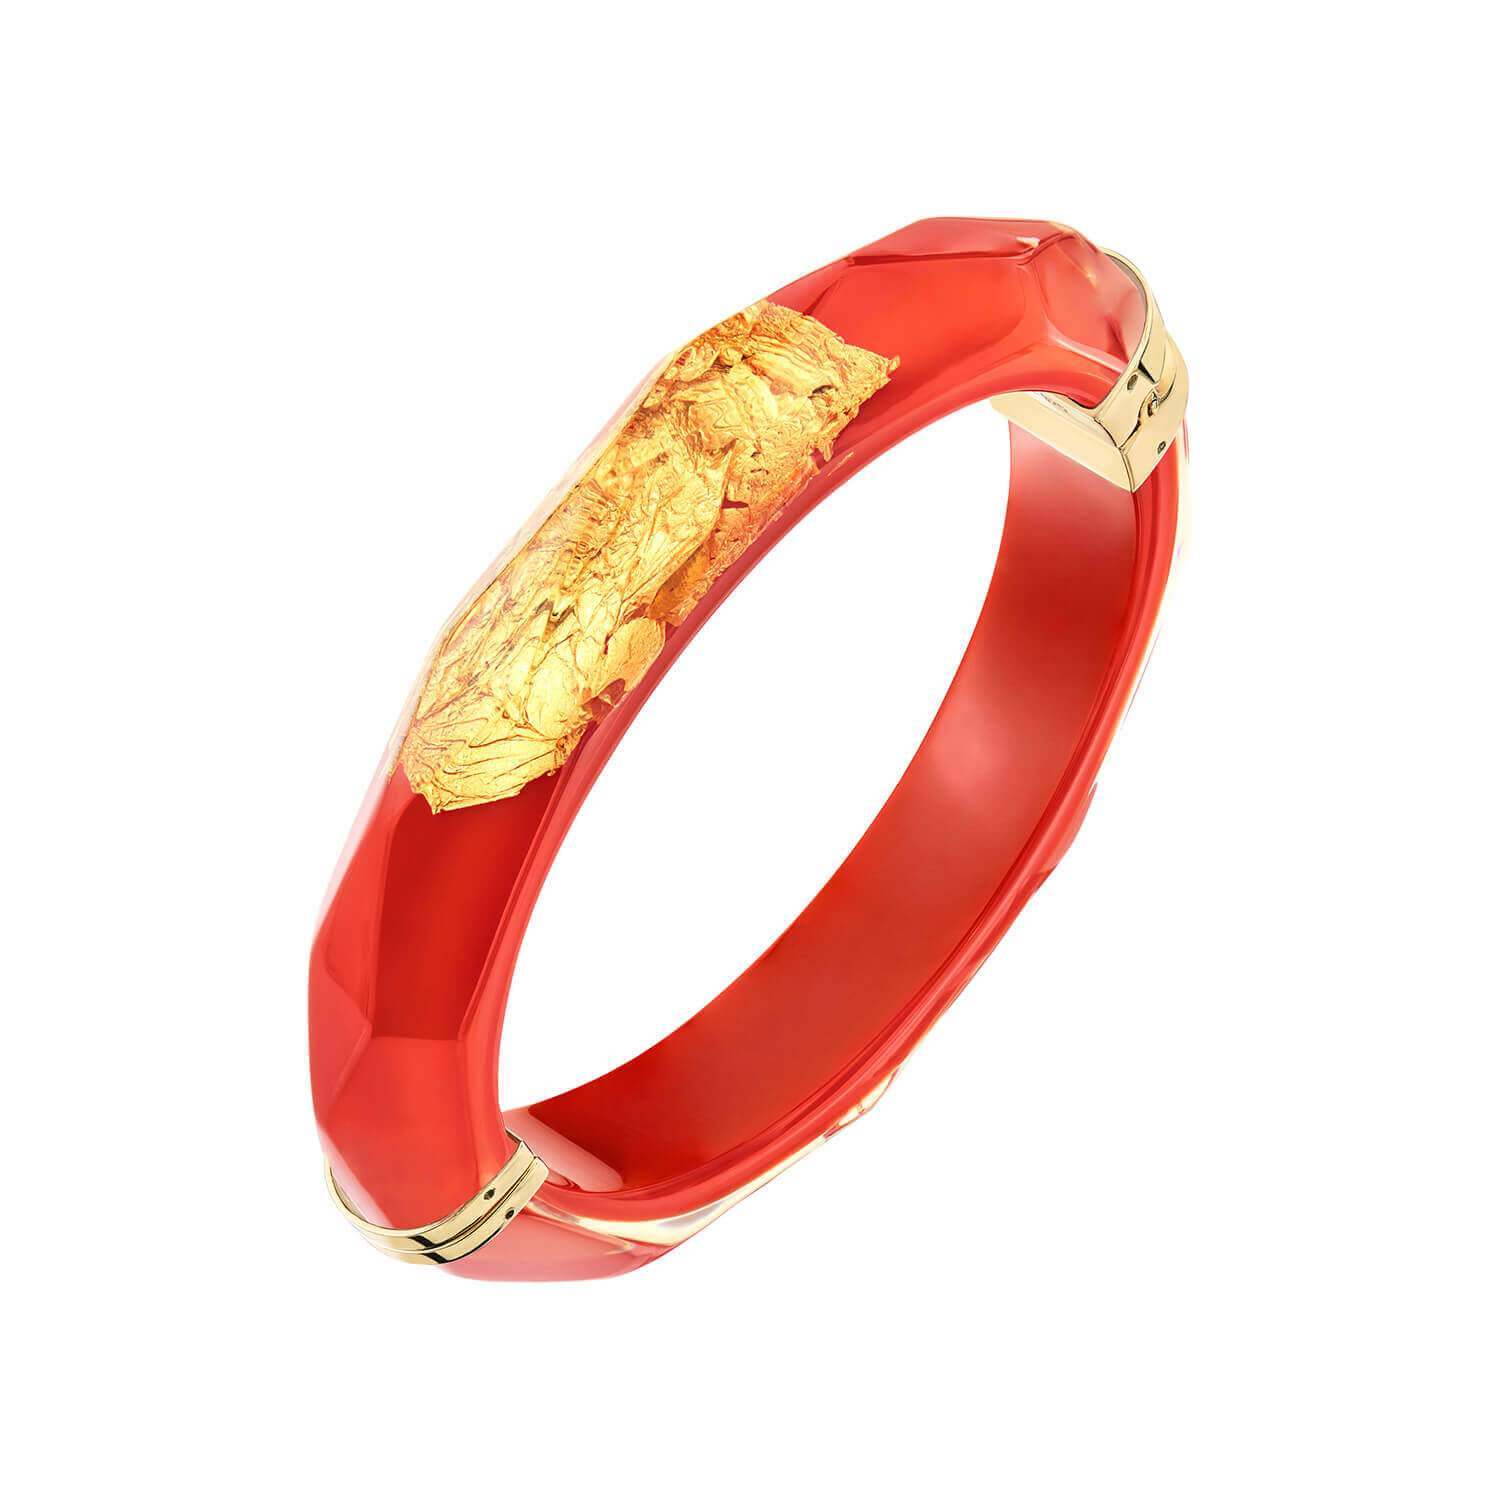 24K Gold Leaf Thin Faceted Lucite Bangle